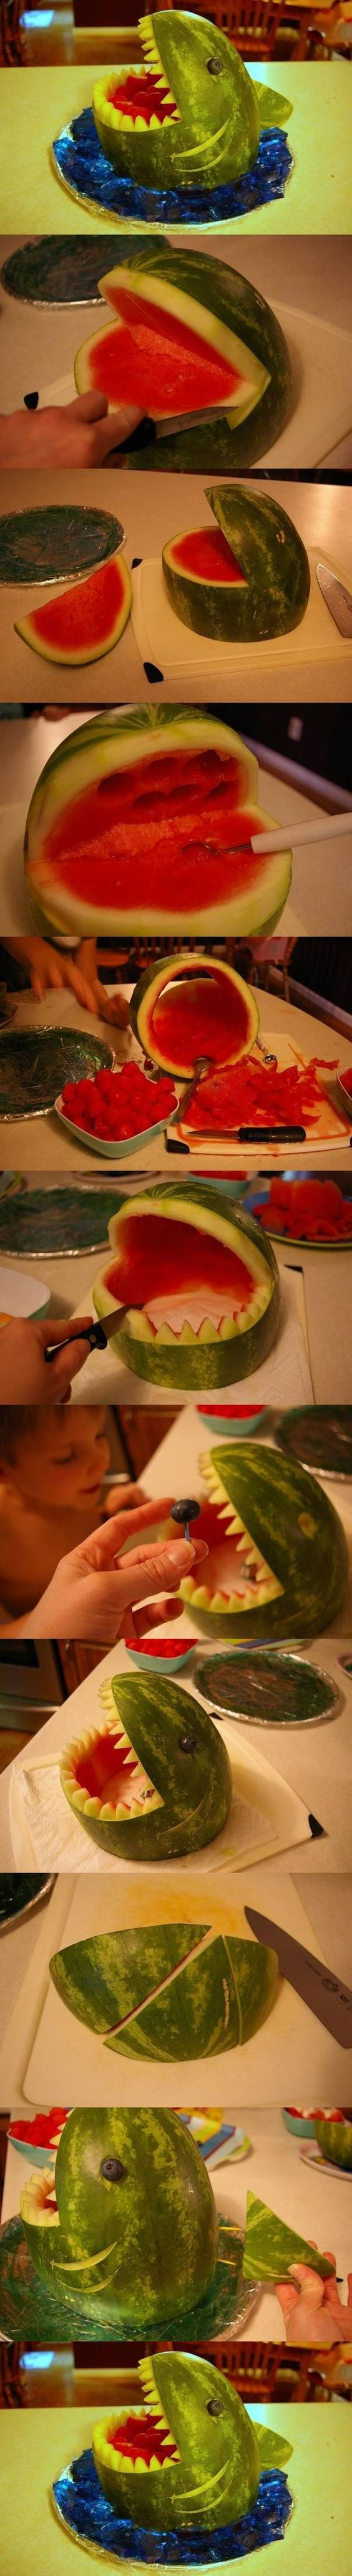 How to Make a Watermelon Shark Carving